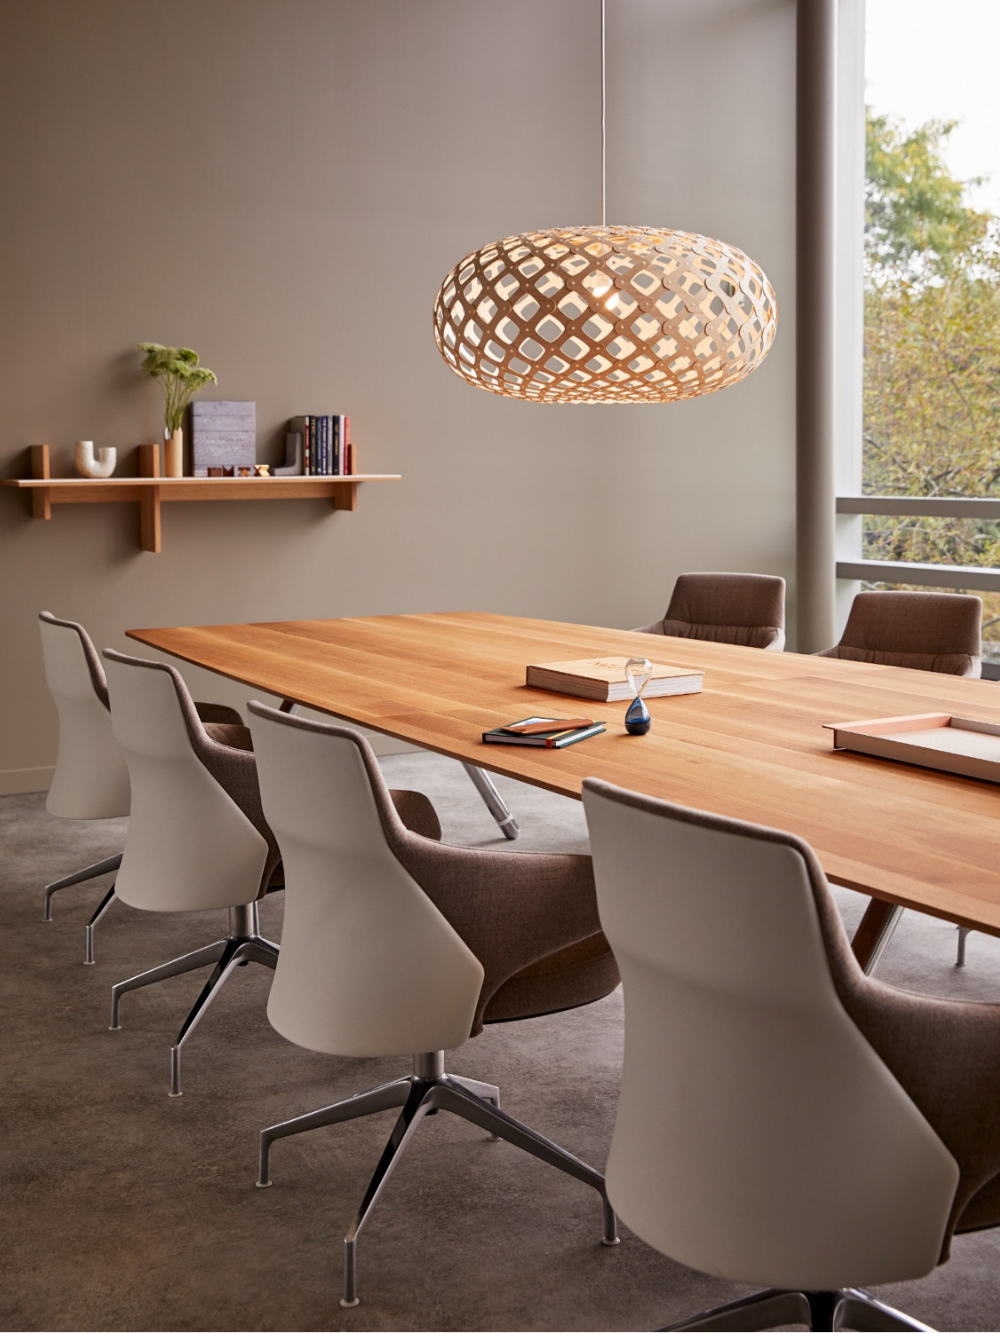 Conference Room Design Ideas: Office Meeting & Conference Room Design Ideas